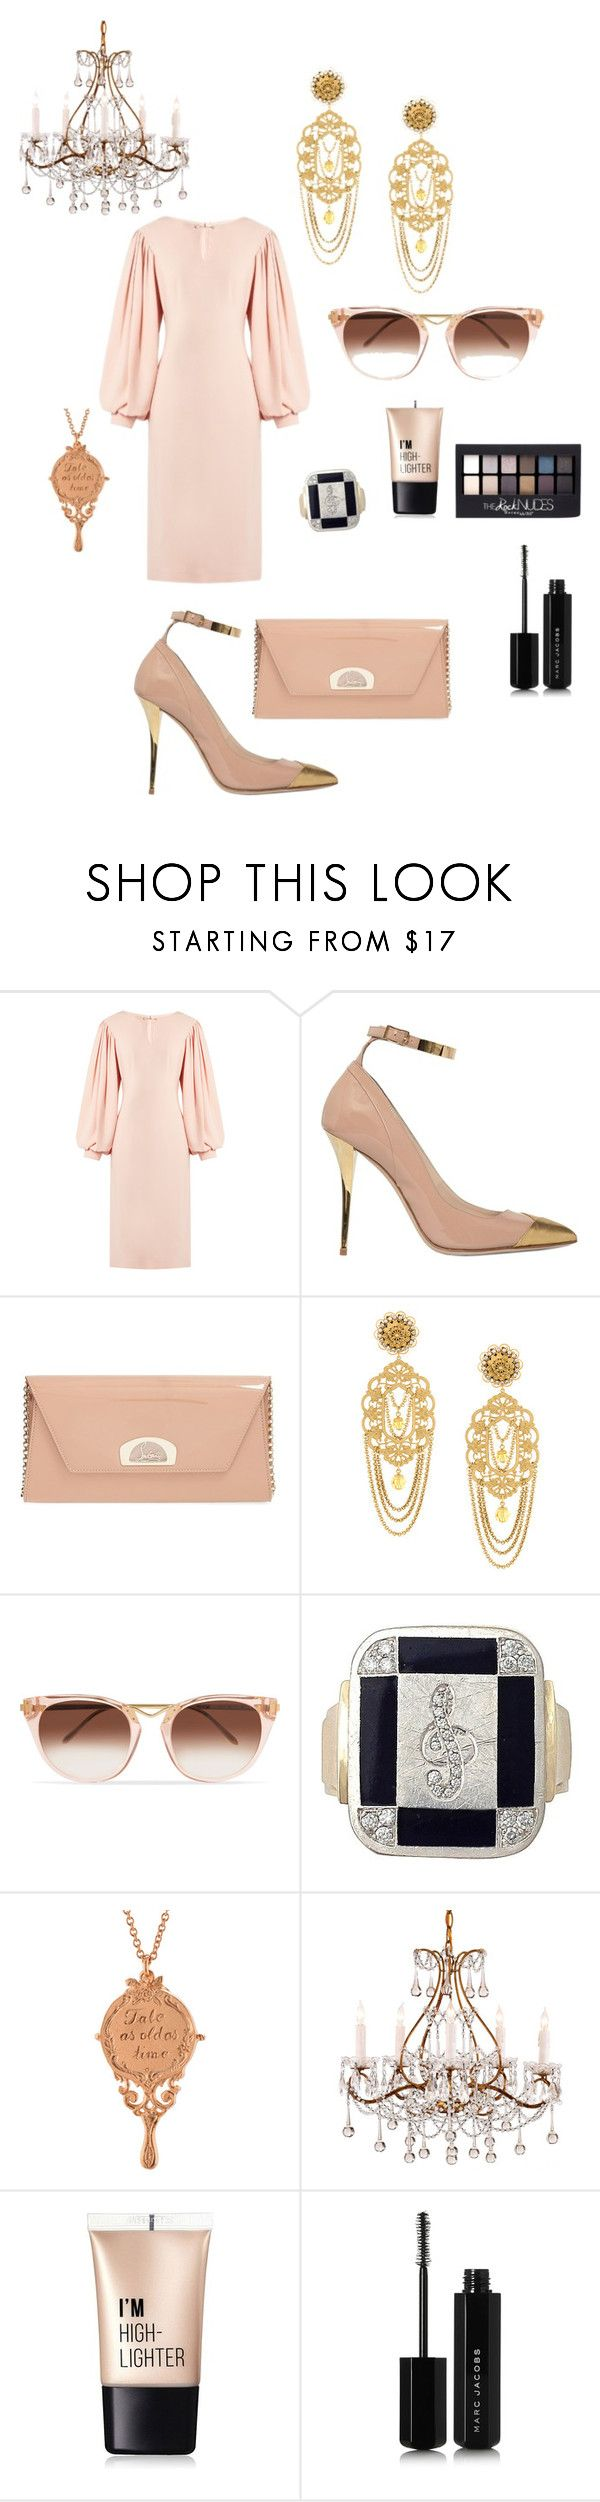 """""""Tale as old as Time"""" by giulia-ostara-re ❤ liked on Polyvore featuring Osman, Balmain, Christian Louboutin, Dolce&Gabbana, Thierry Lasry, Alex Monroe, Charlotte Russe, Maybelline and Marc Jacobs"""